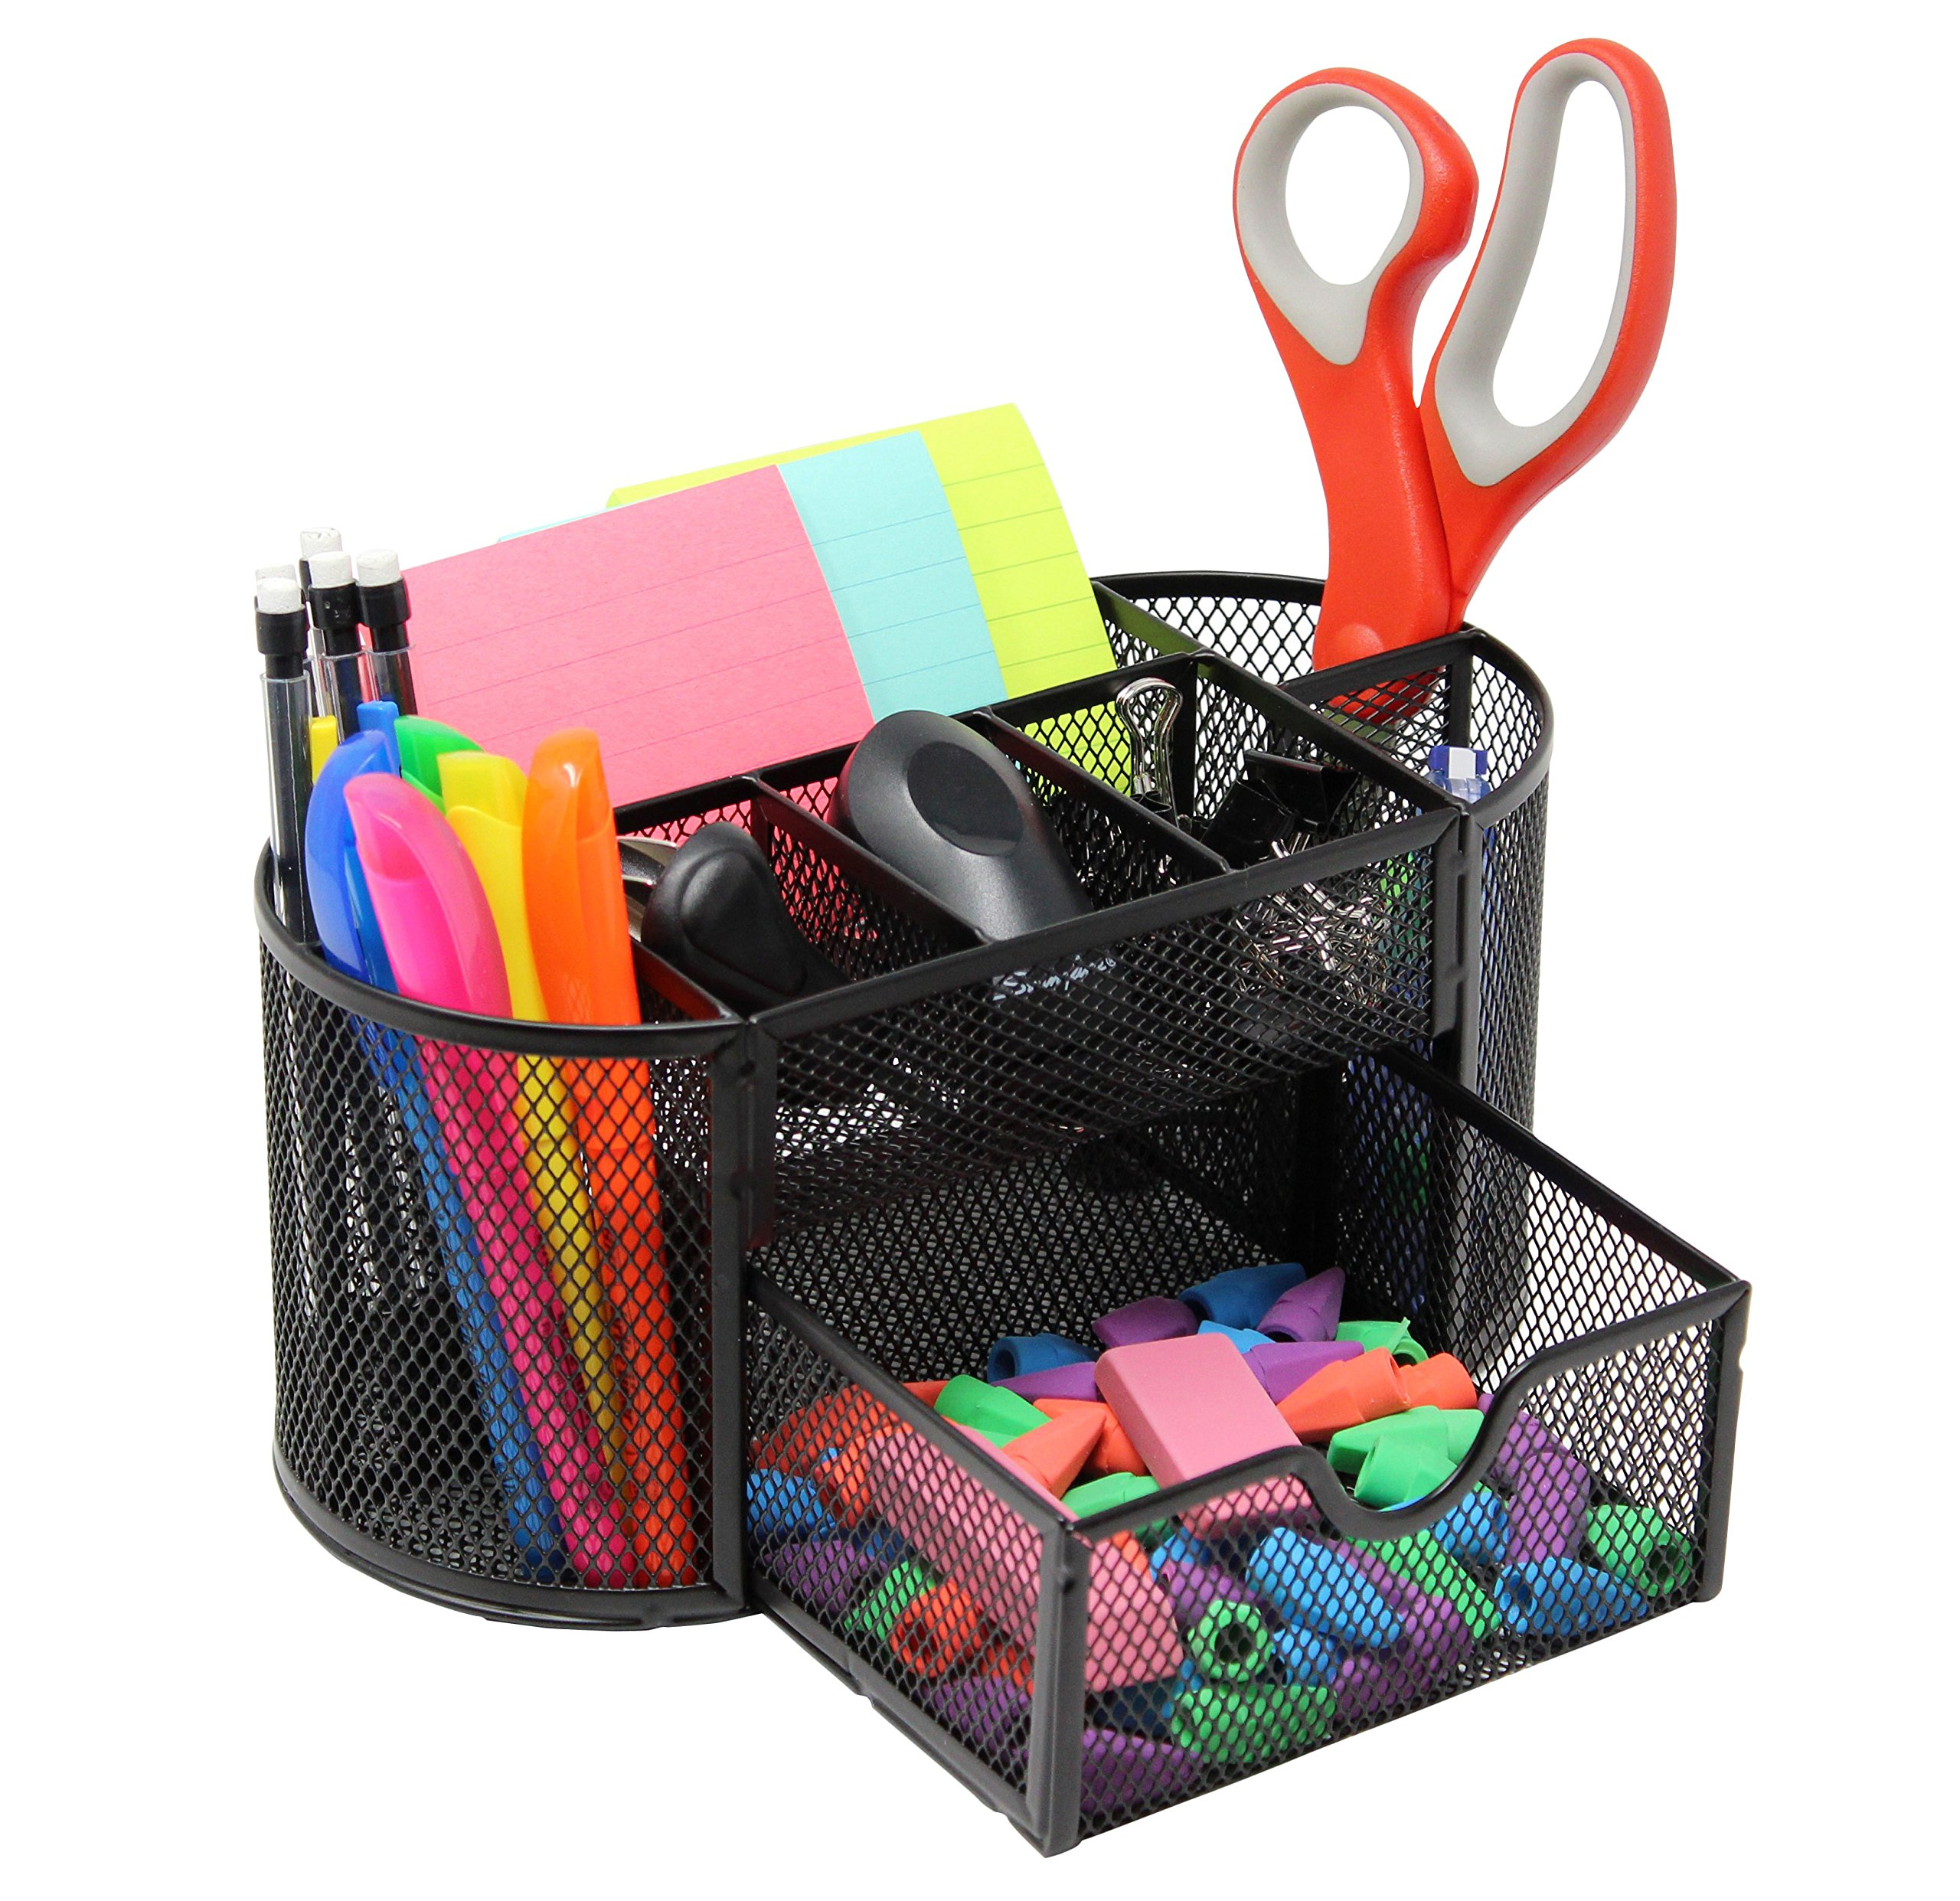 Get Quotations Mesh Desk Organizer Caddy For Office Supplies And Accessories Black